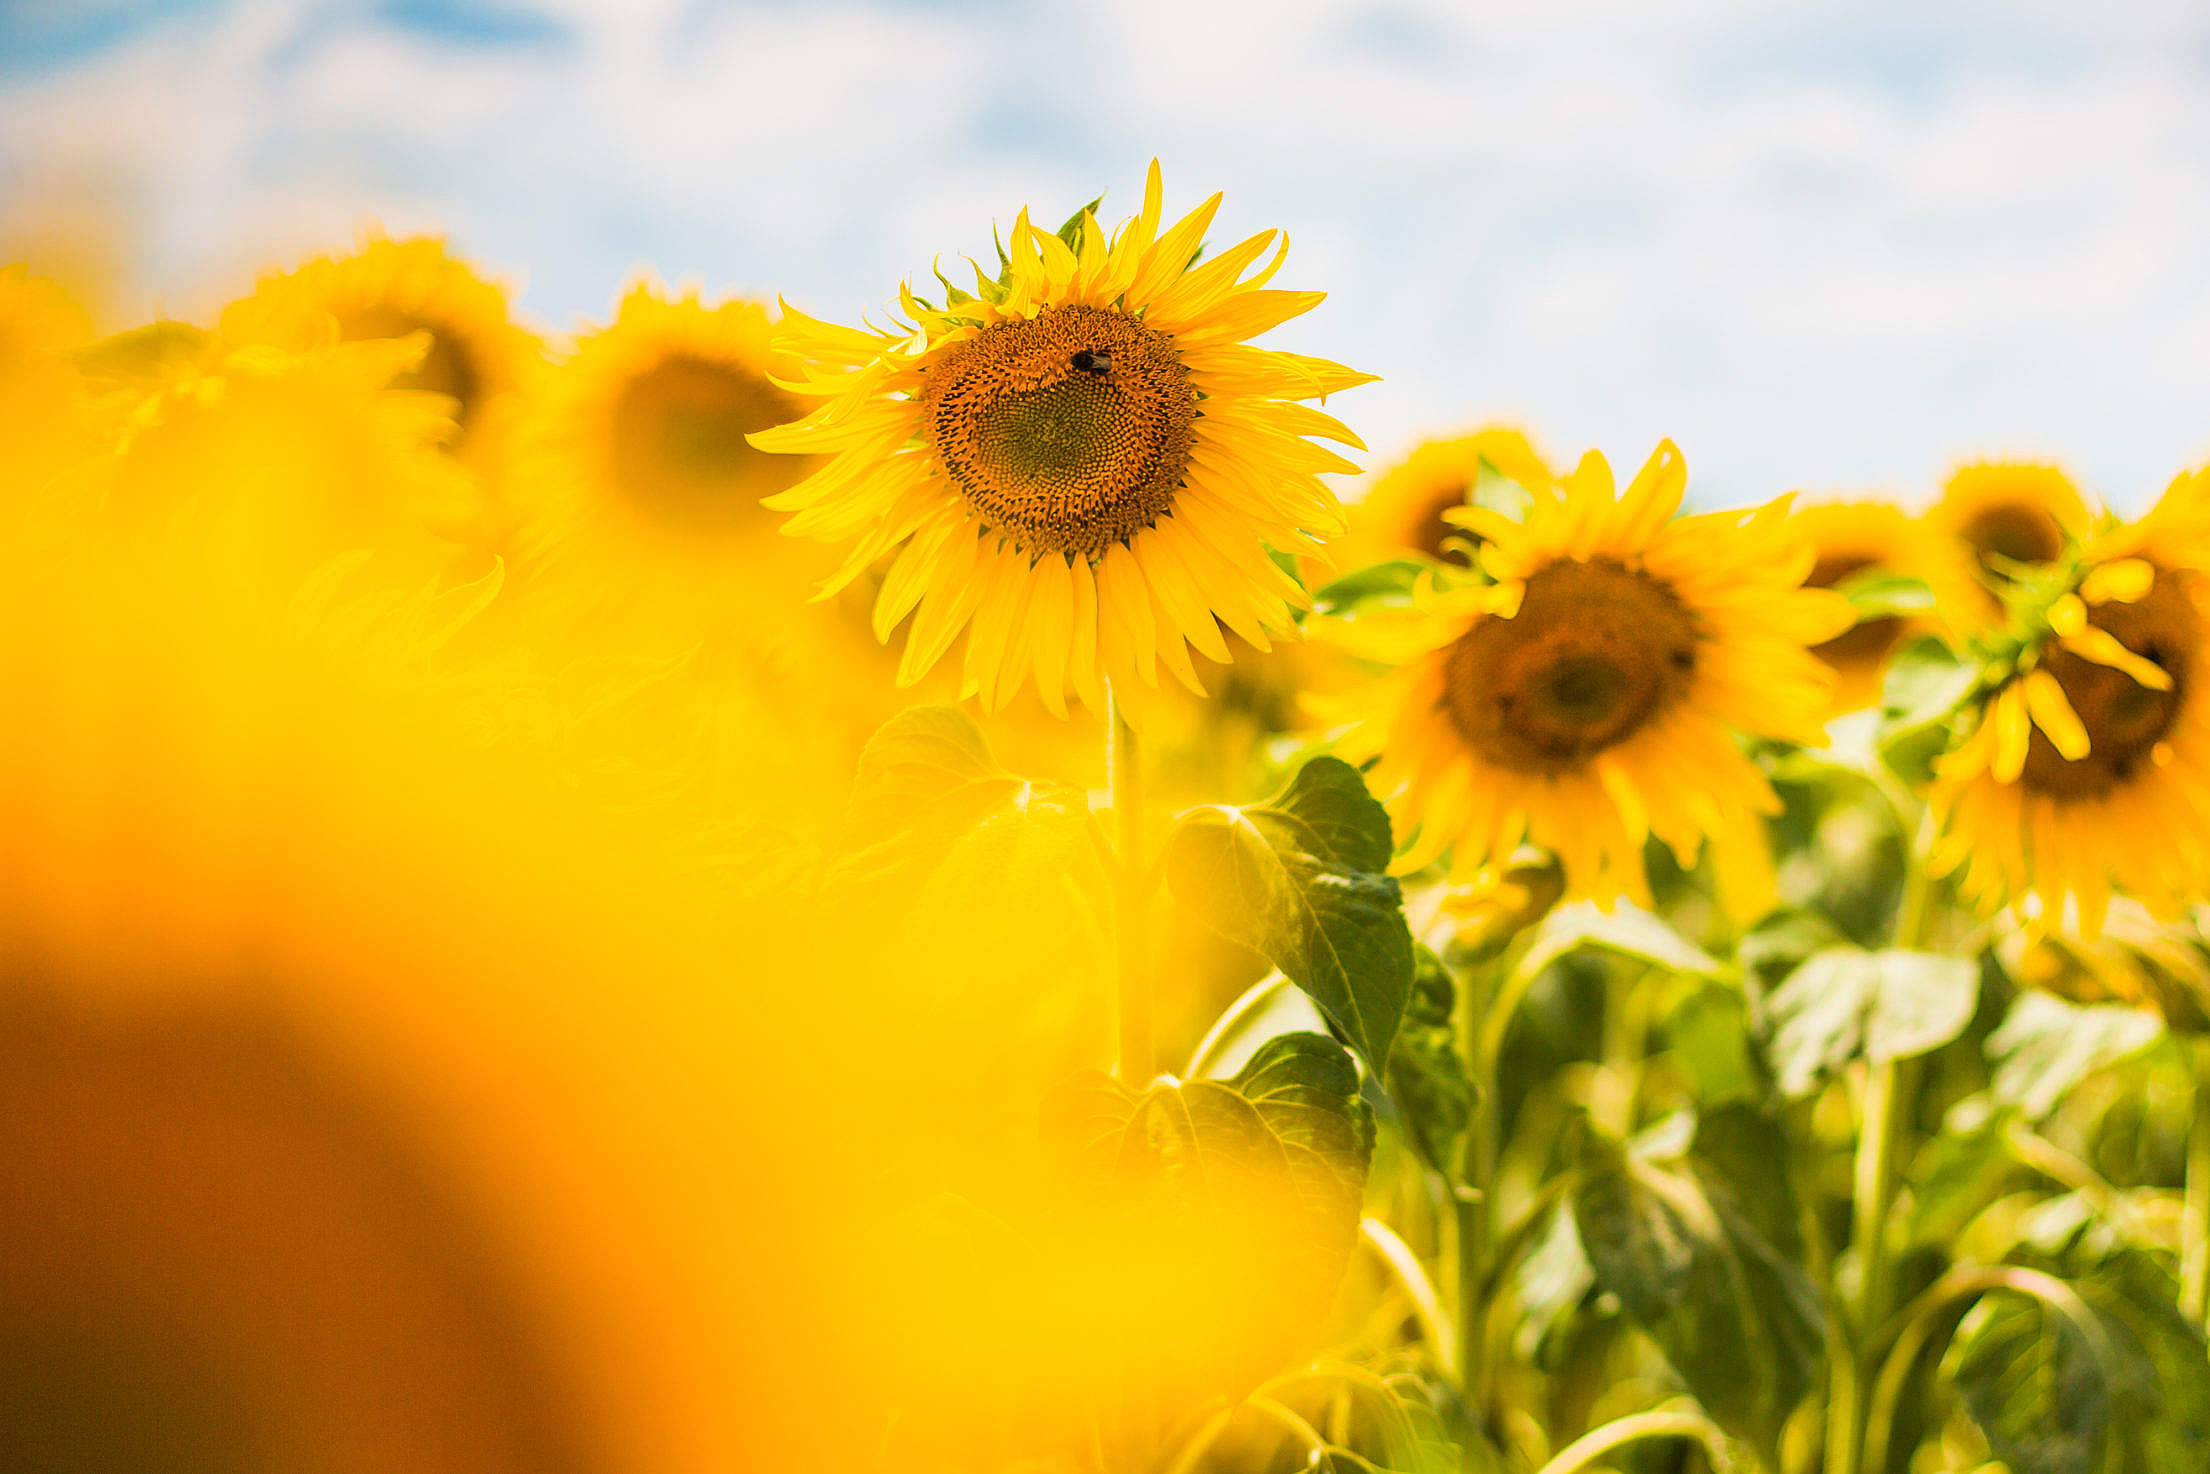 Another Colorful Sunflower Field Free Stock Photo